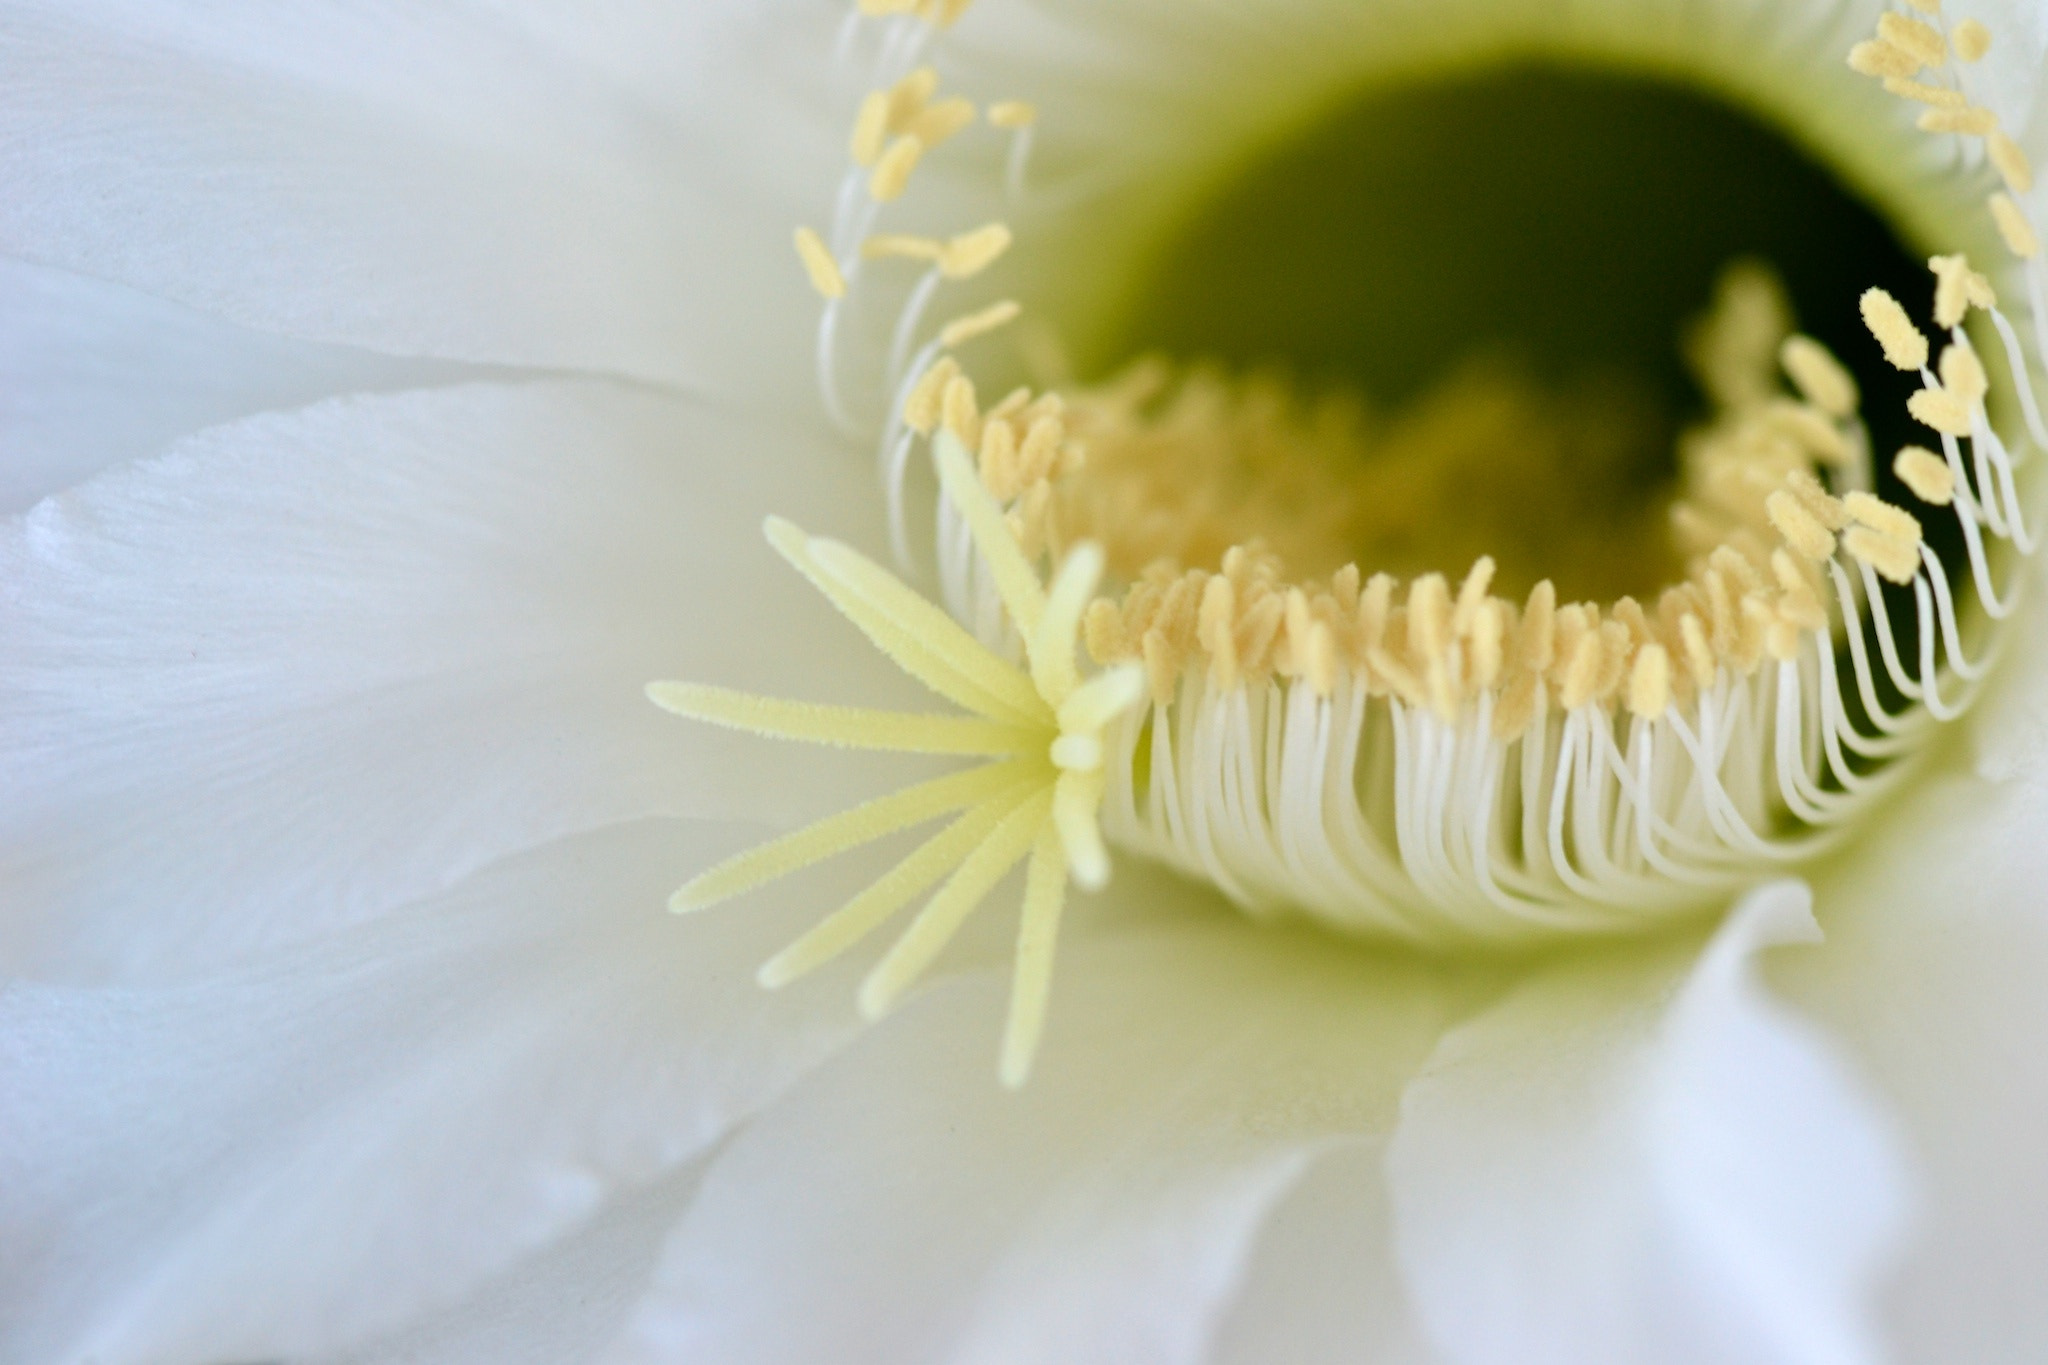 Photograph Cactus Flower 2 by Cristian Statescu on 500px